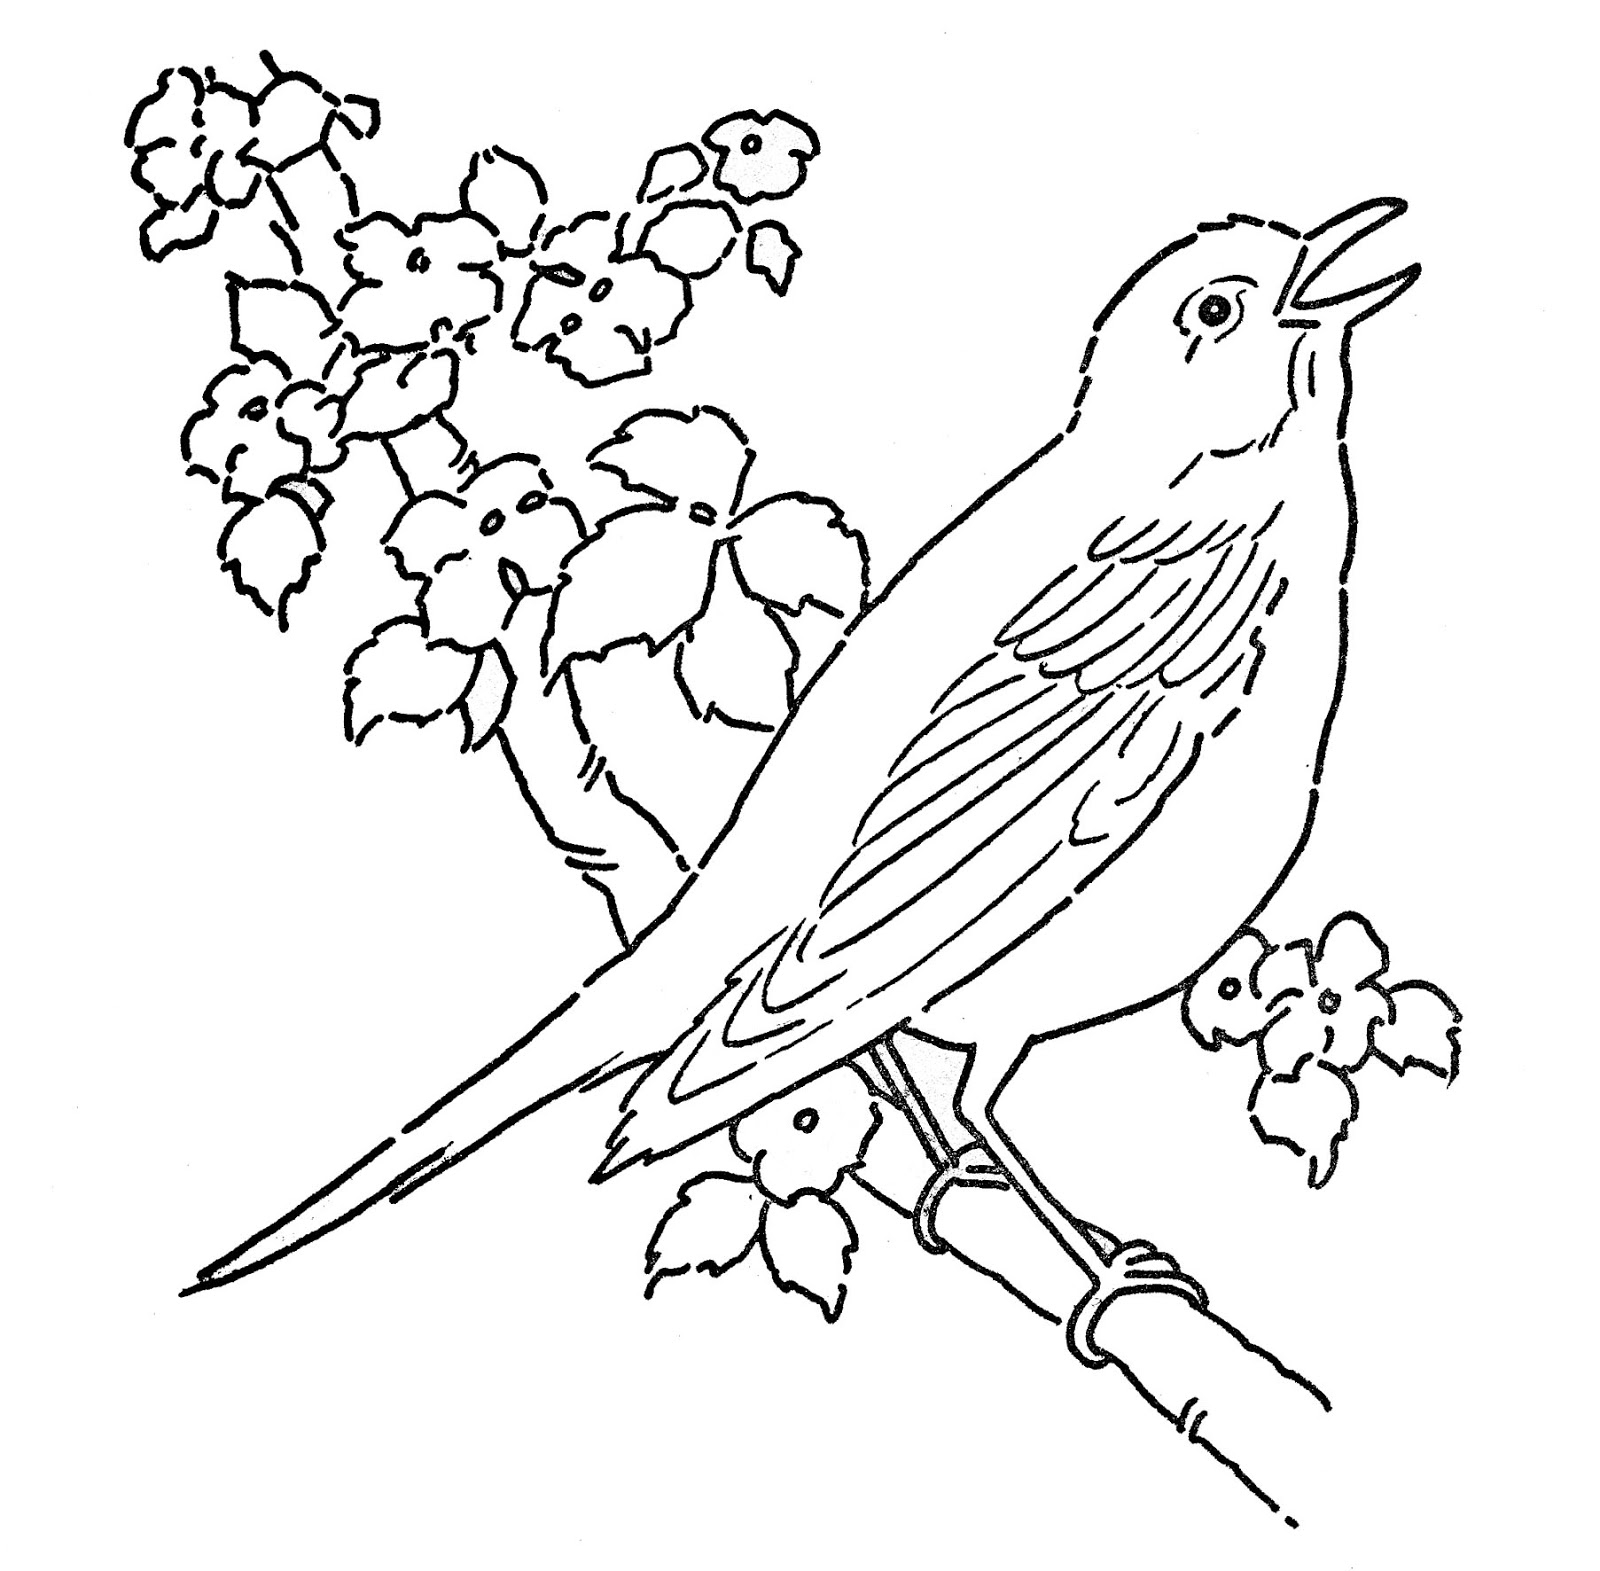 Coloring Pages Birds Collection 5c - Save it to your computer